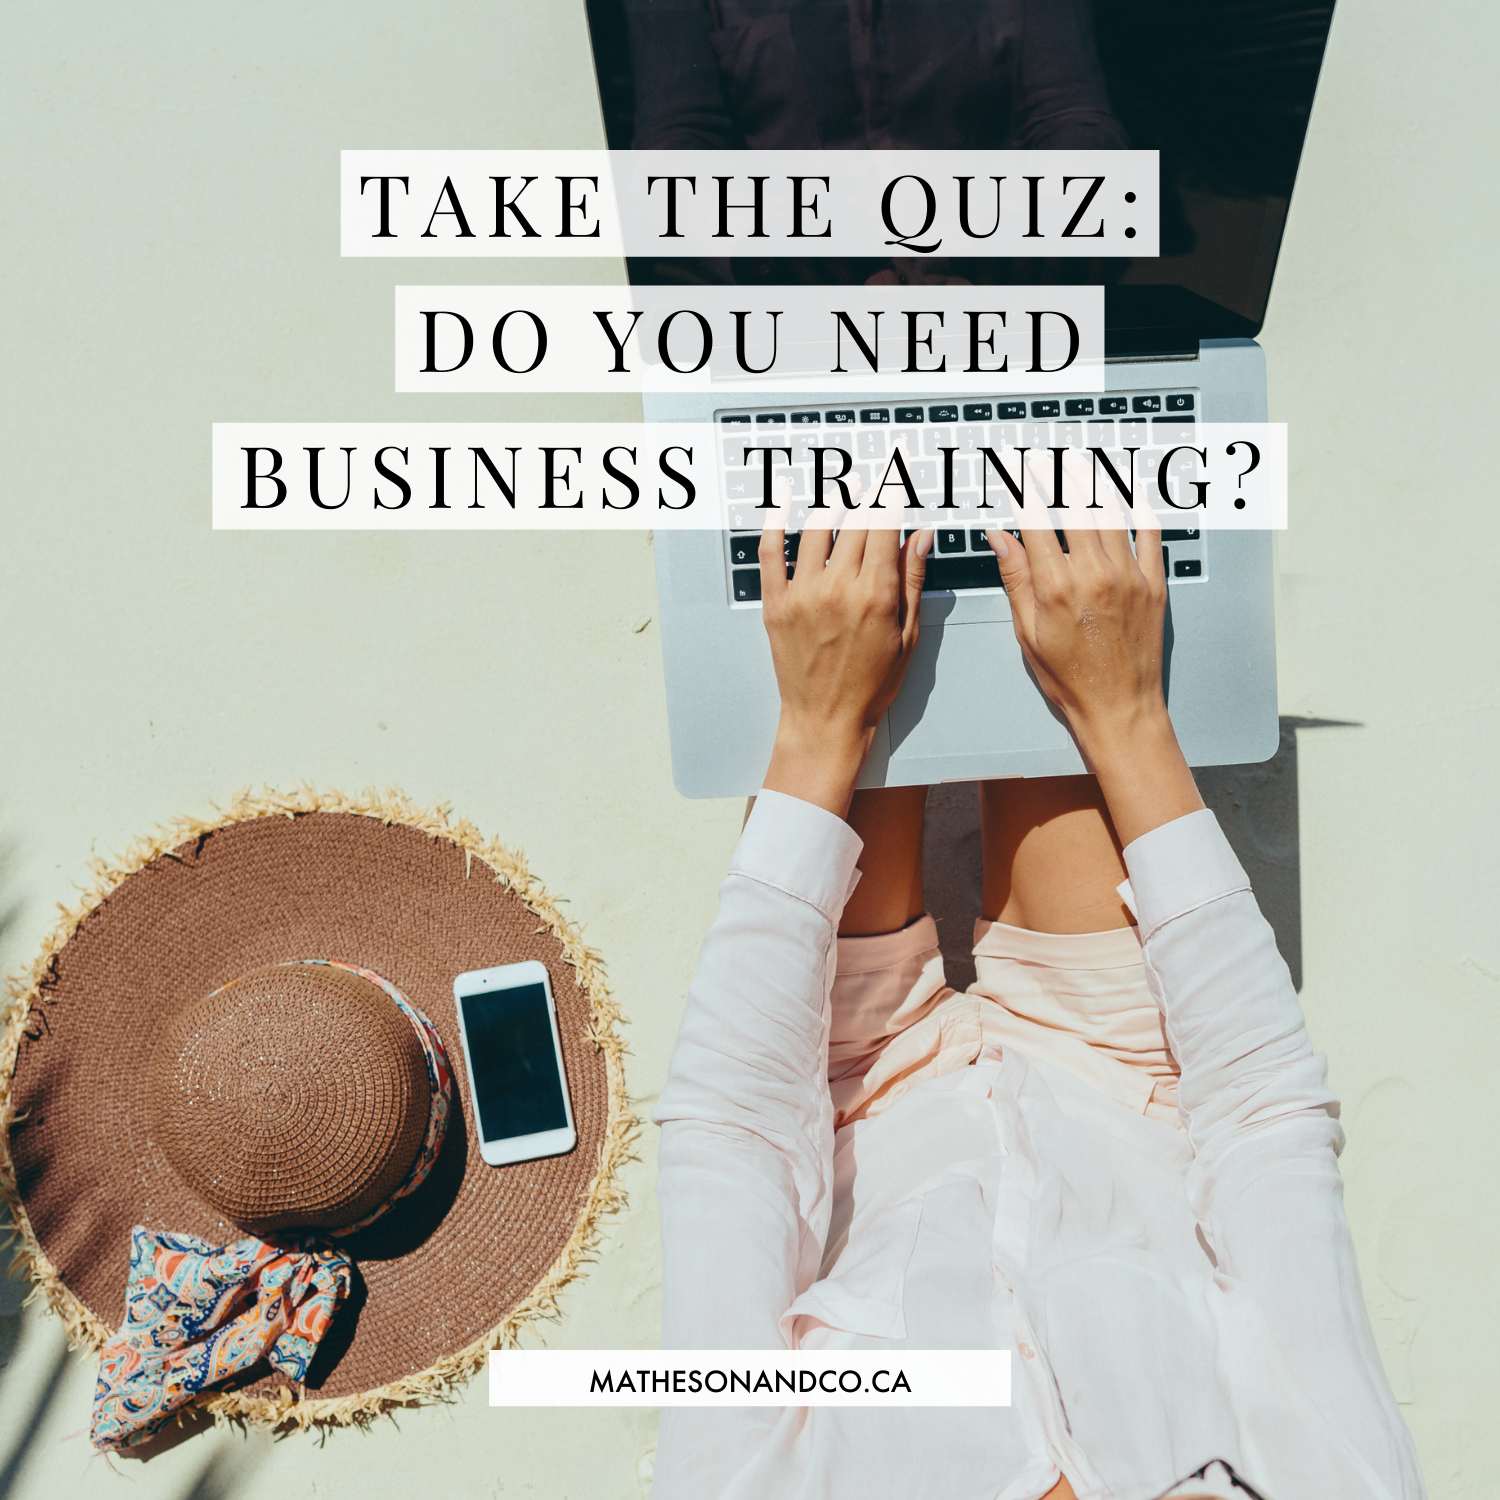 Take the Quiz: Do You Need Business Training?